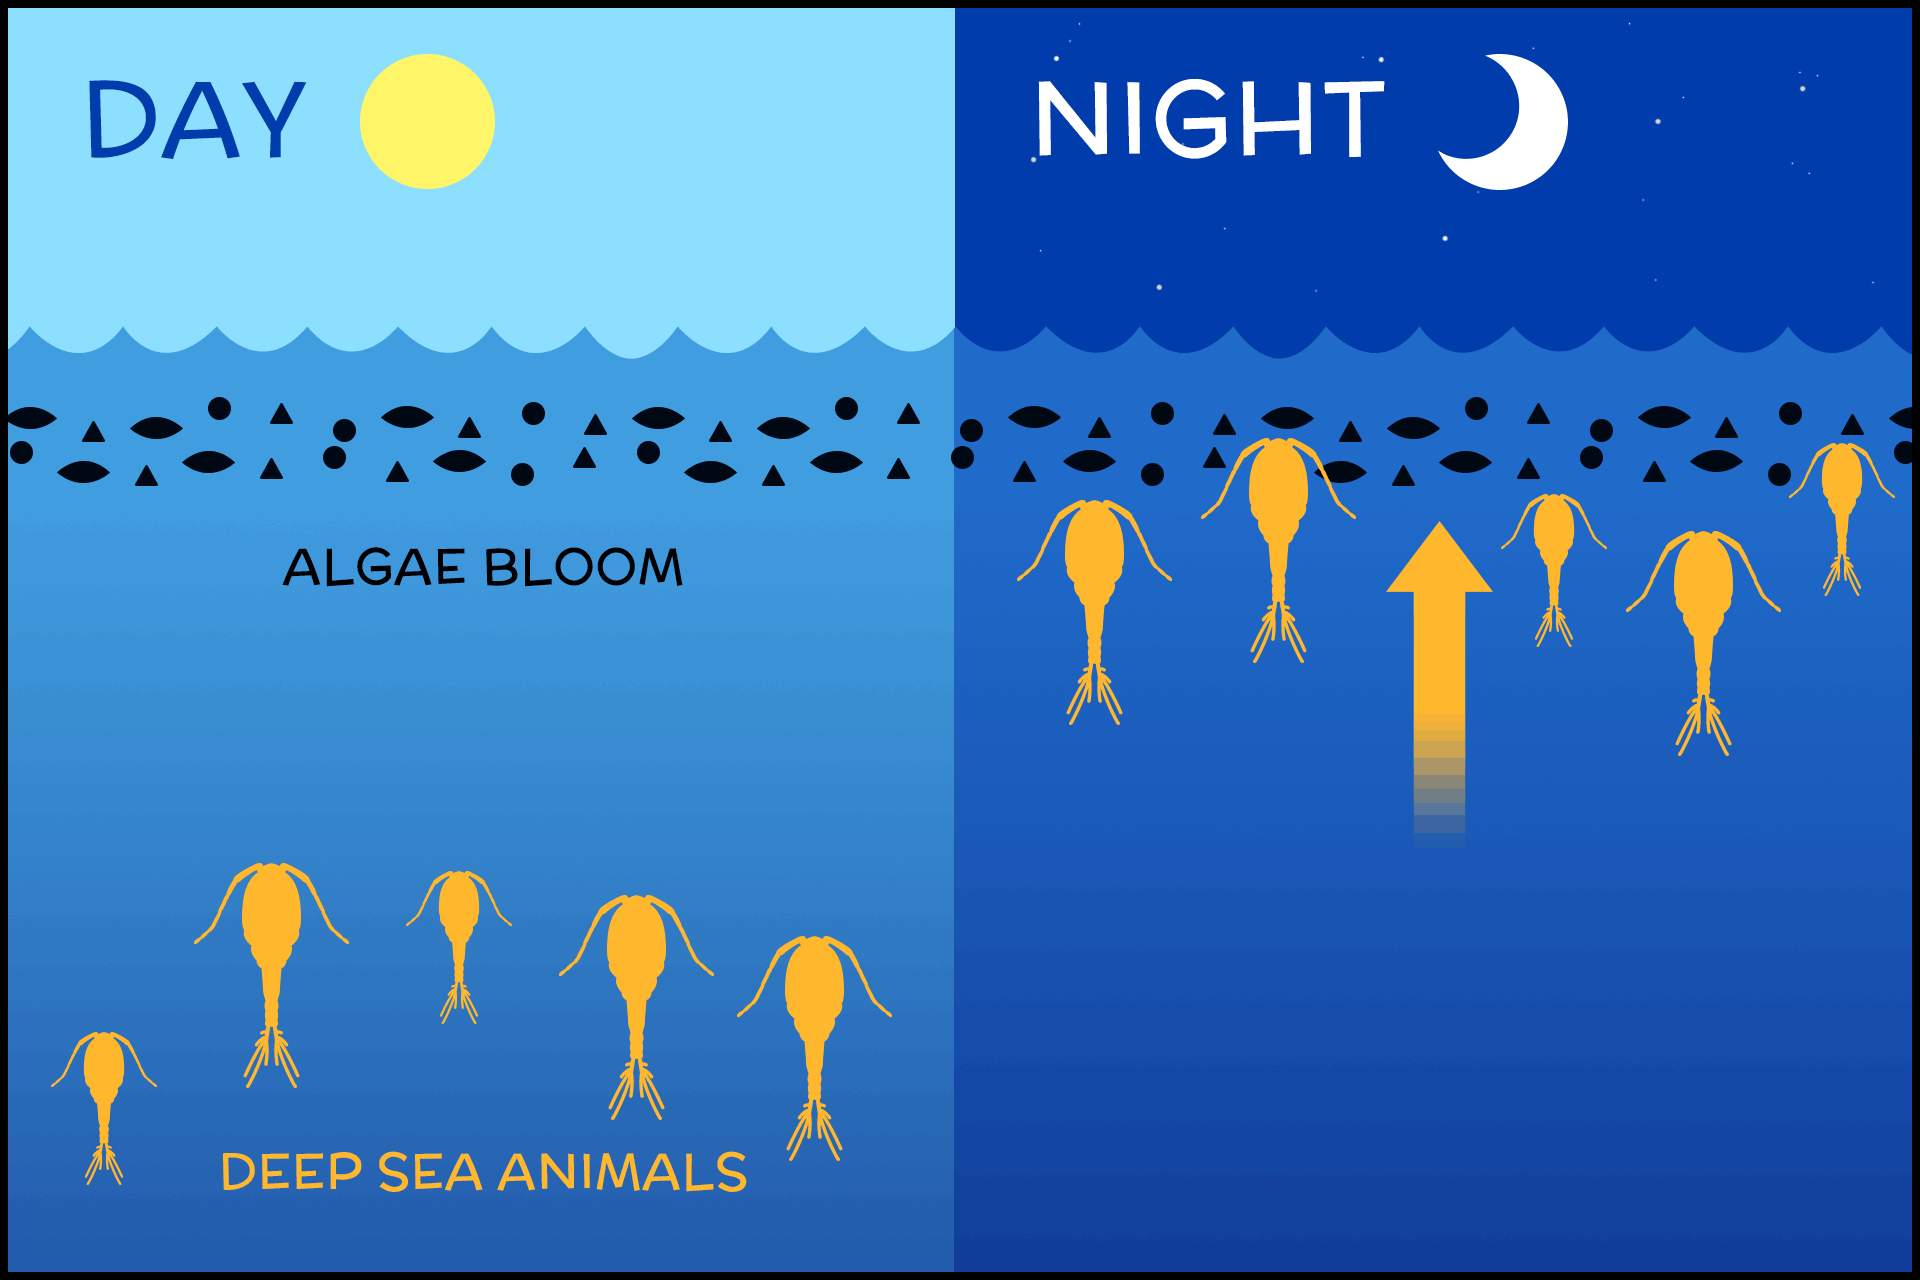 diagram with daytime ocean on left, showing animals in the depths, and nighttime ocean on right, showing animals near surface